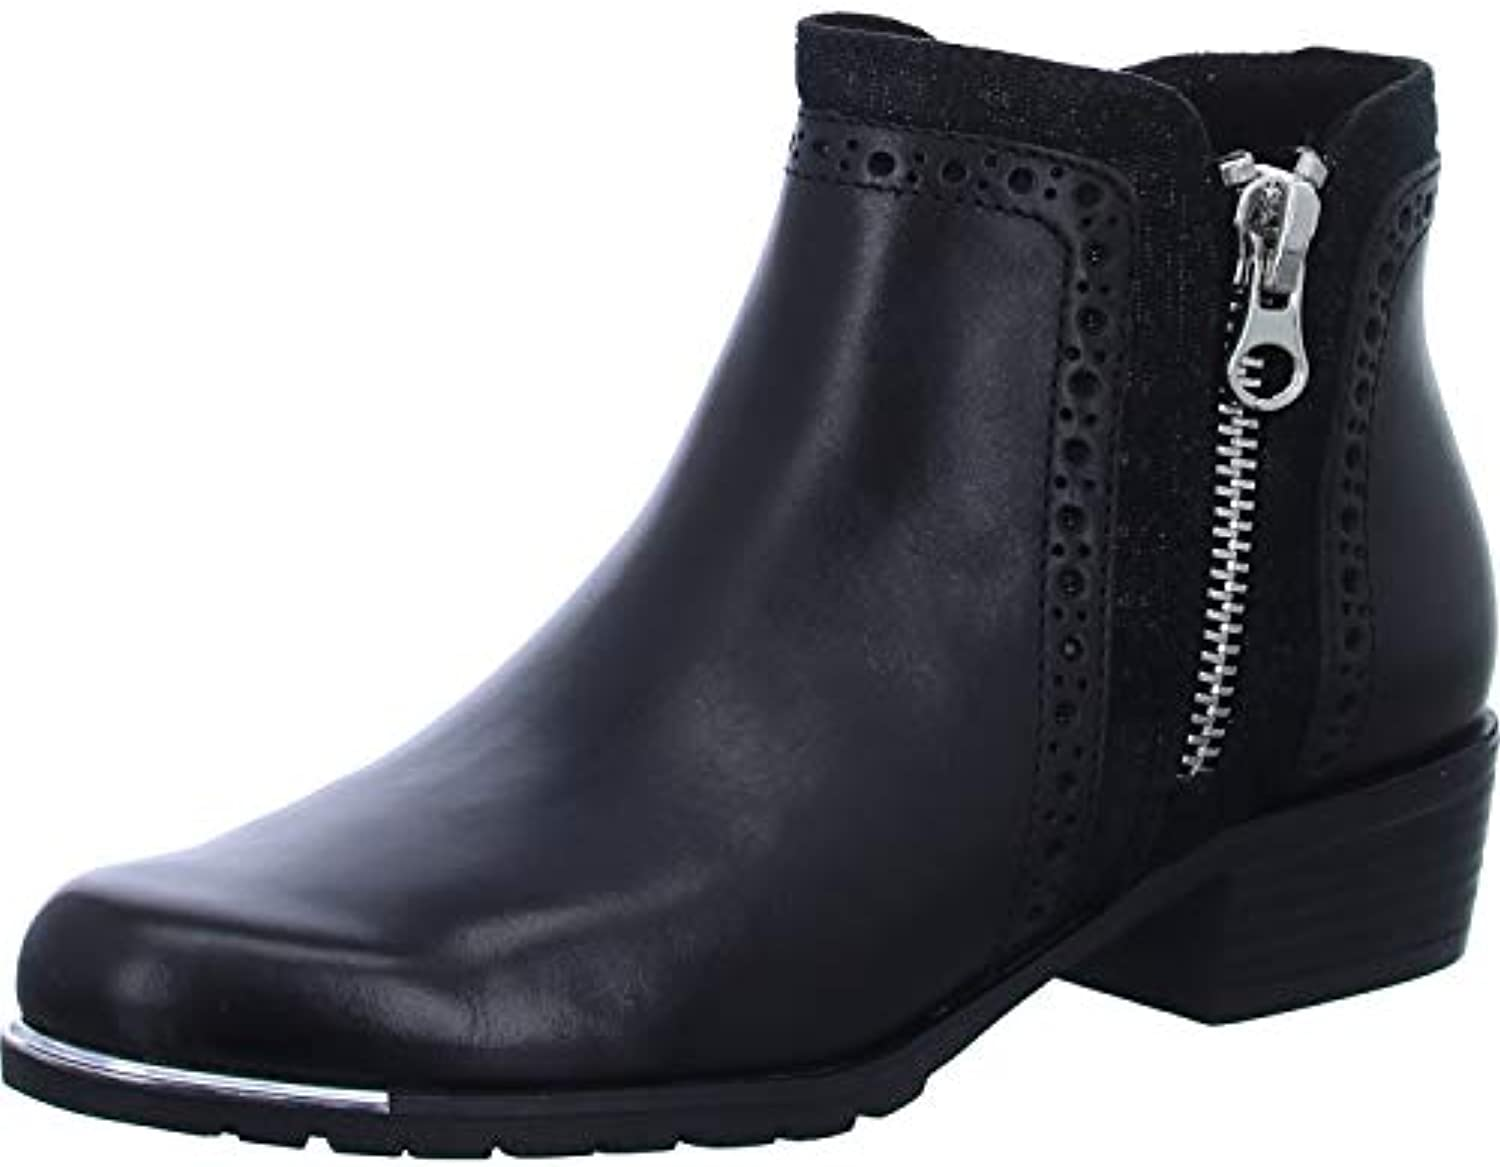 e5d39509c1f Man Woman Caprice Women rsquo s Classic Boot B07CBD21TV Parent sell product  product product quality Good quality 2f8bb8